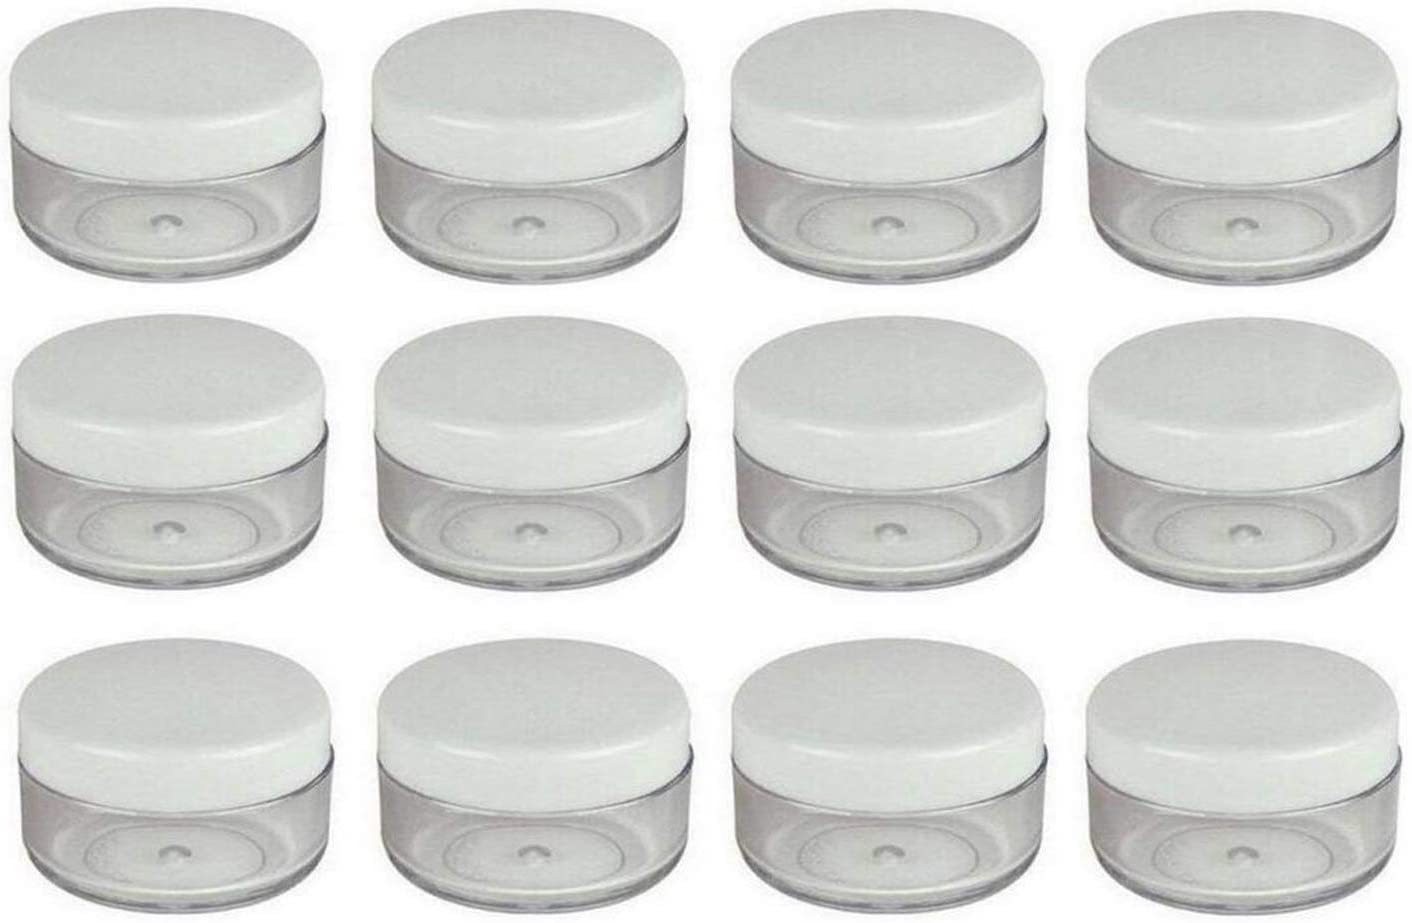 24PCS 15 Gram 15ml 0.5oz Refillable White Plastic Screw Cap Lid with Clear Base Empty Plastic Sample Container Jars for Cosmetic Make Up Cream Lotion Eye Shadow Nails Powder Gems Jewelry [並行輸入品]